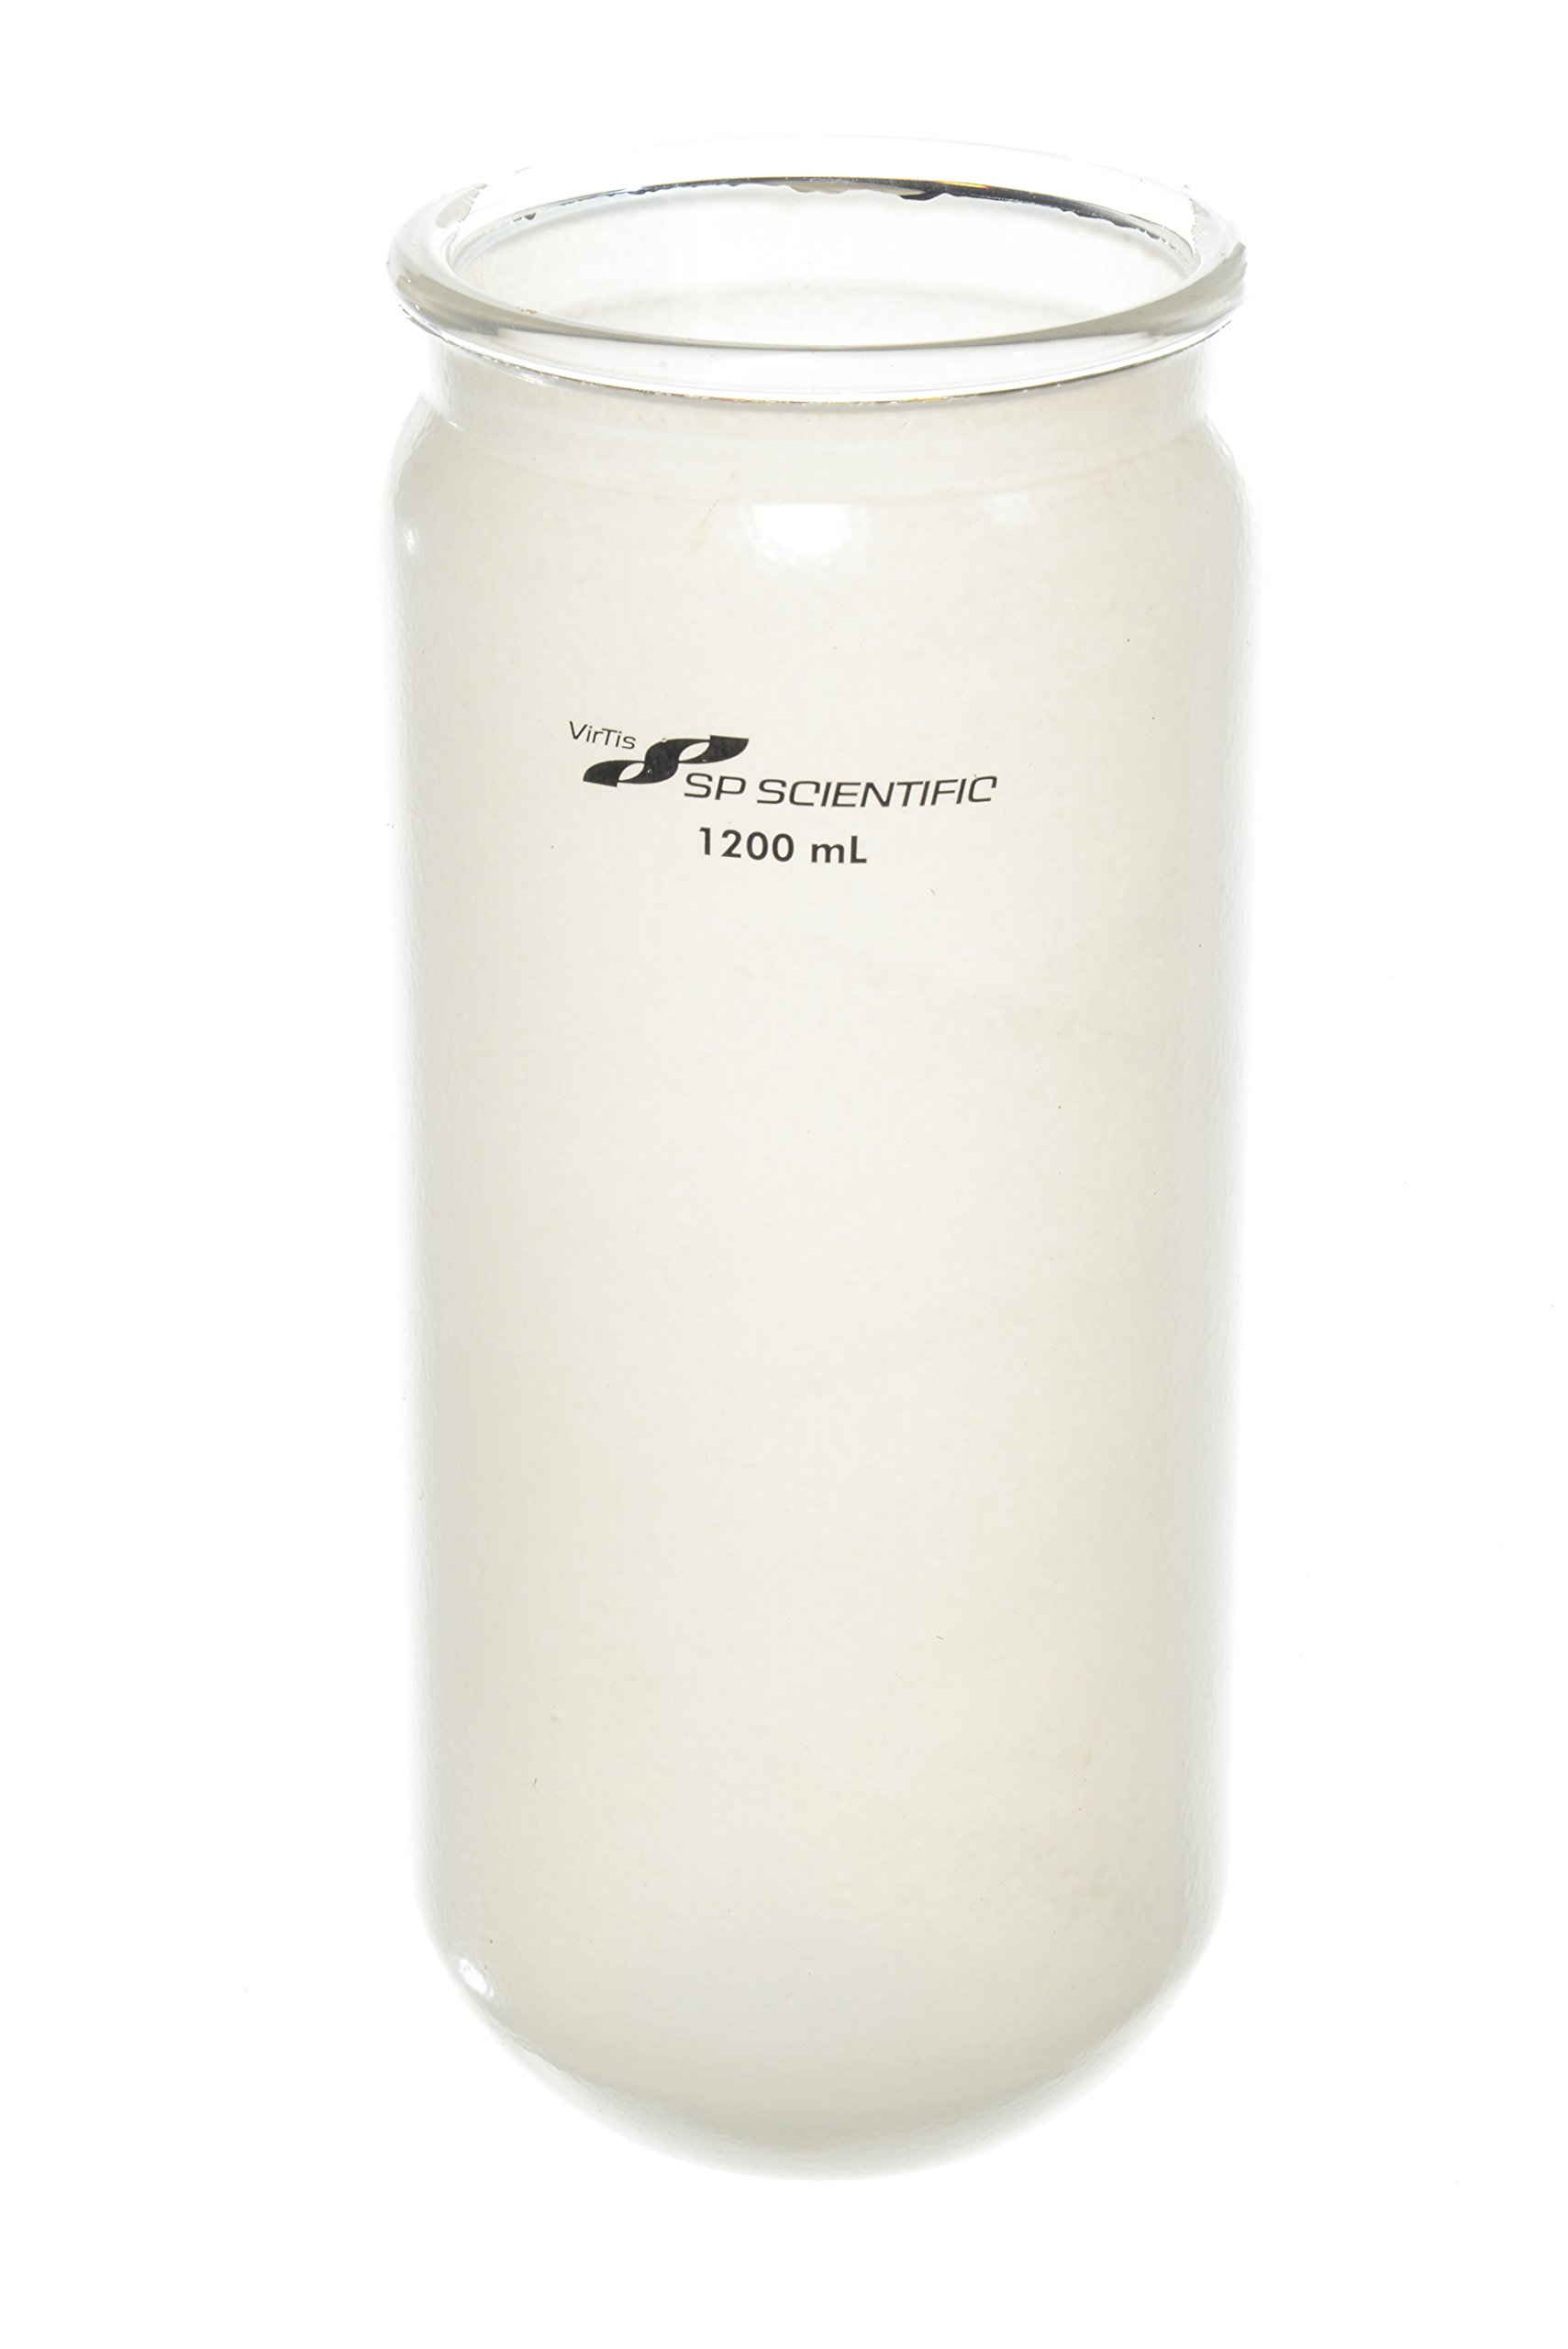 Wilmad LG-13100-510 Freeze Drying Flask, Safety Coated, 1200 Capacity by SP Scienceware